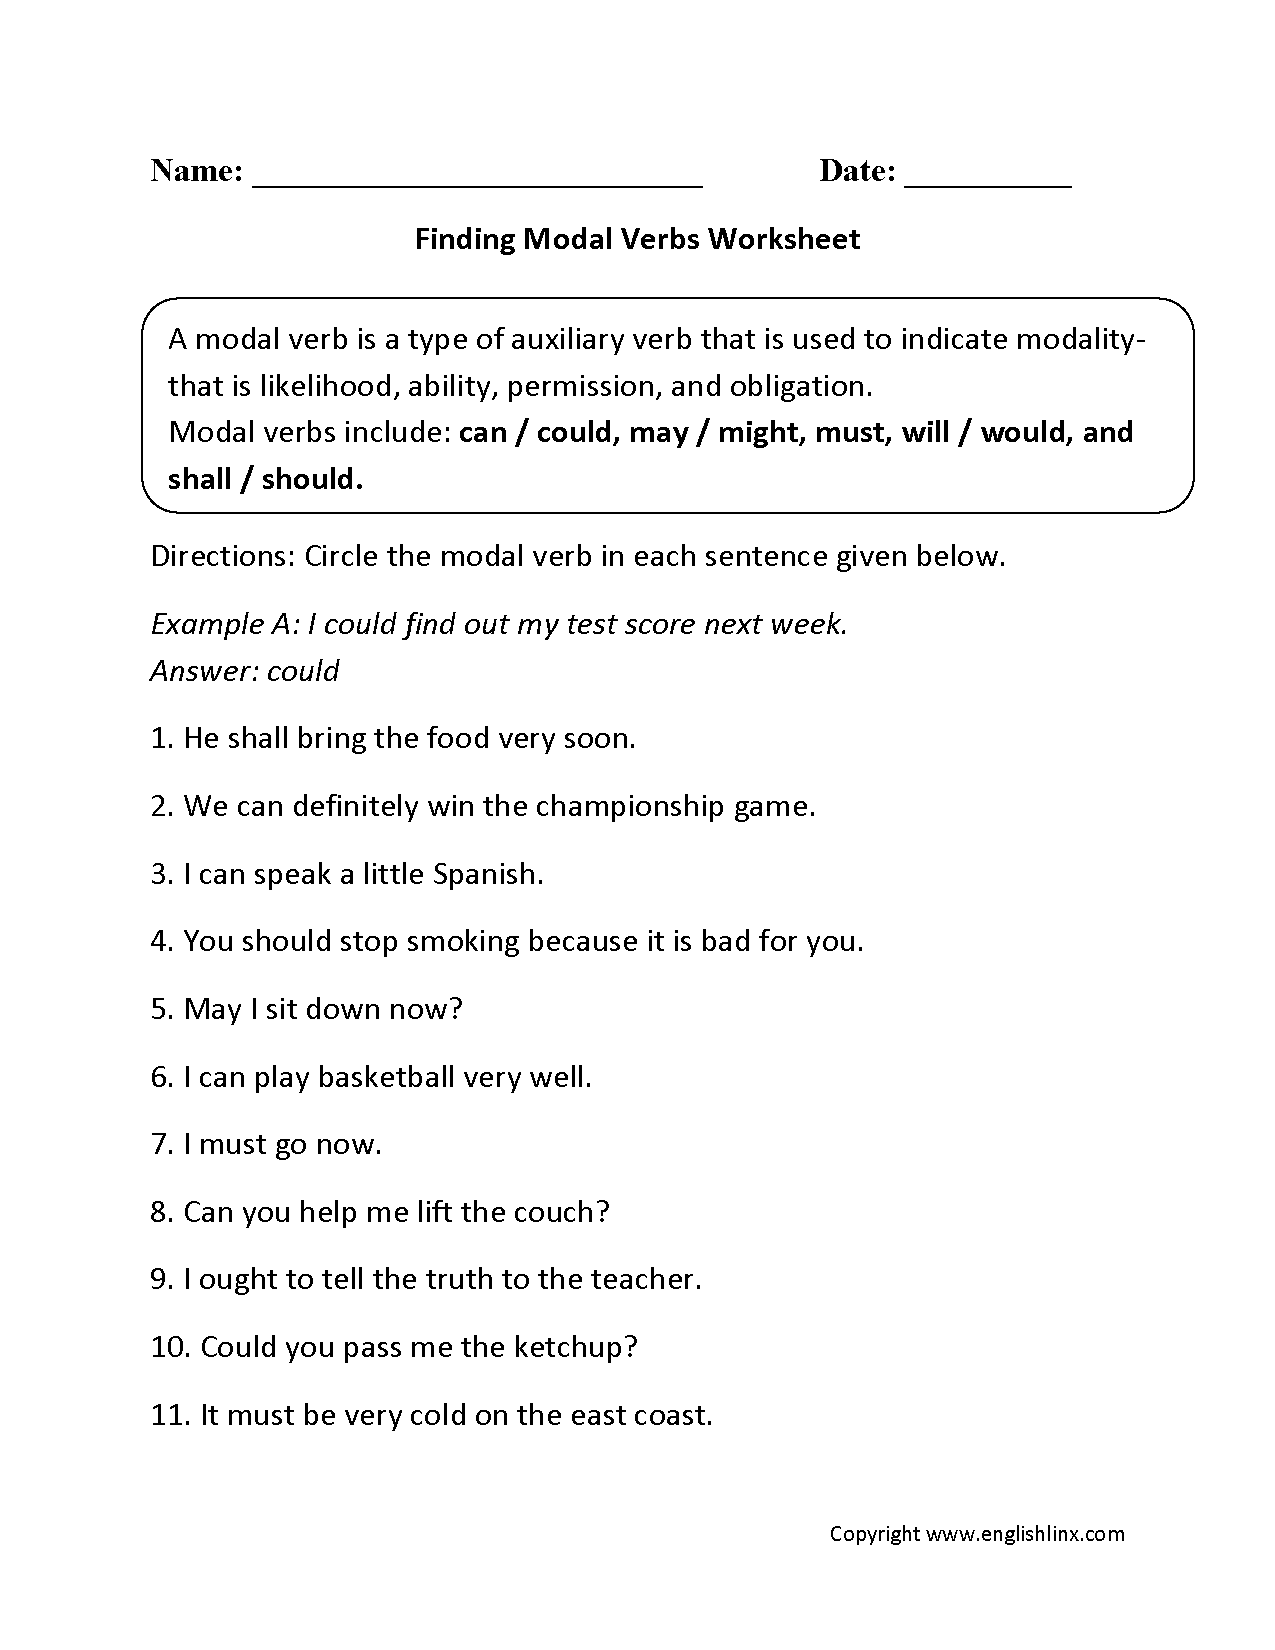 worksheet Grammar Worksheets 7th Grade verbs worksheets modal worksheets